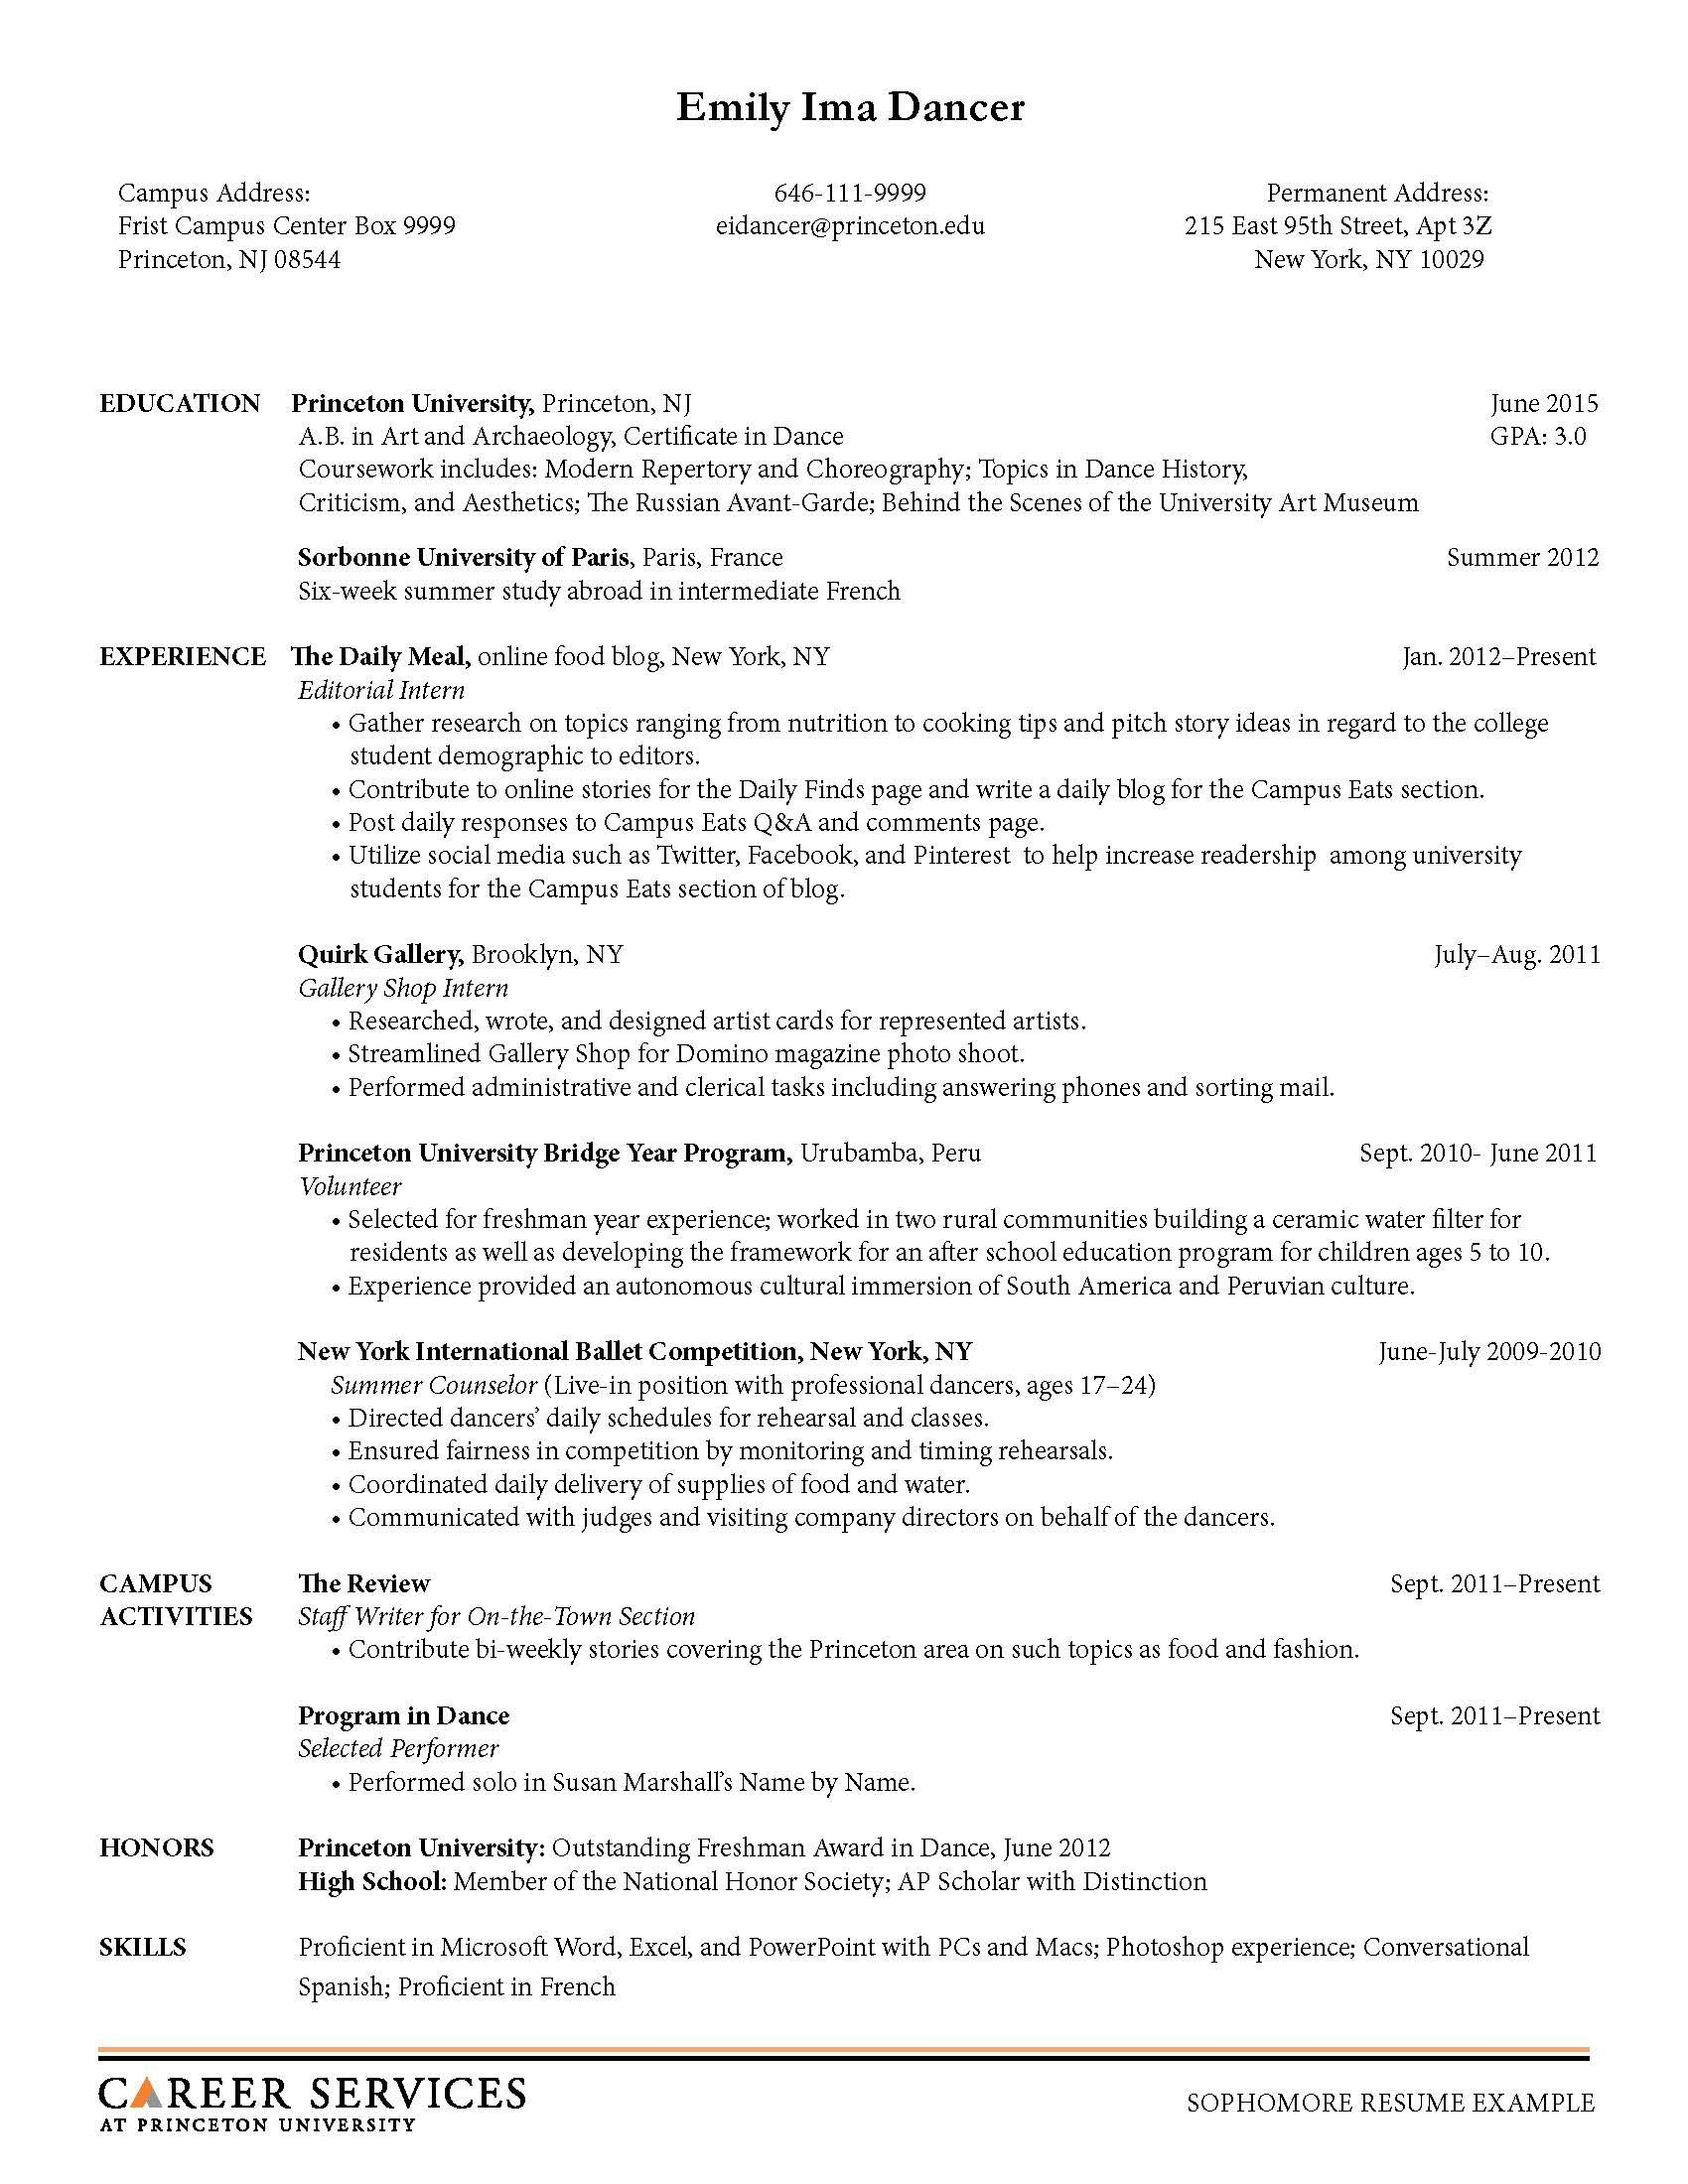 Opposenewapstandardsus  Unique Sample Resume Resume And Career On Pinterest With Great School Secretary Resume Besides Accounts Payable Clerk Resume Furthermore How To Make Resume Free With Delightful Creating A Resume Online Also Best Skills To Put On Resume In Addition Sample Resume For Medical Assistant And Create Your Resume As Well As Resume For Food Service Additionally Resume For Registered Nurse From Pinterestcom With Opposenewapstandardsus  Great Sample Resume Resume And Career On Pinterest With Delightful School Secretary Resume Besides Accounts Payable Clerk Resume Furthermore How To Make Resume Free And Unique Creating A Resume Online Also Best Skills To Put On Resume In Addition Sample Resume For Medical Assistant From Pinterestcom